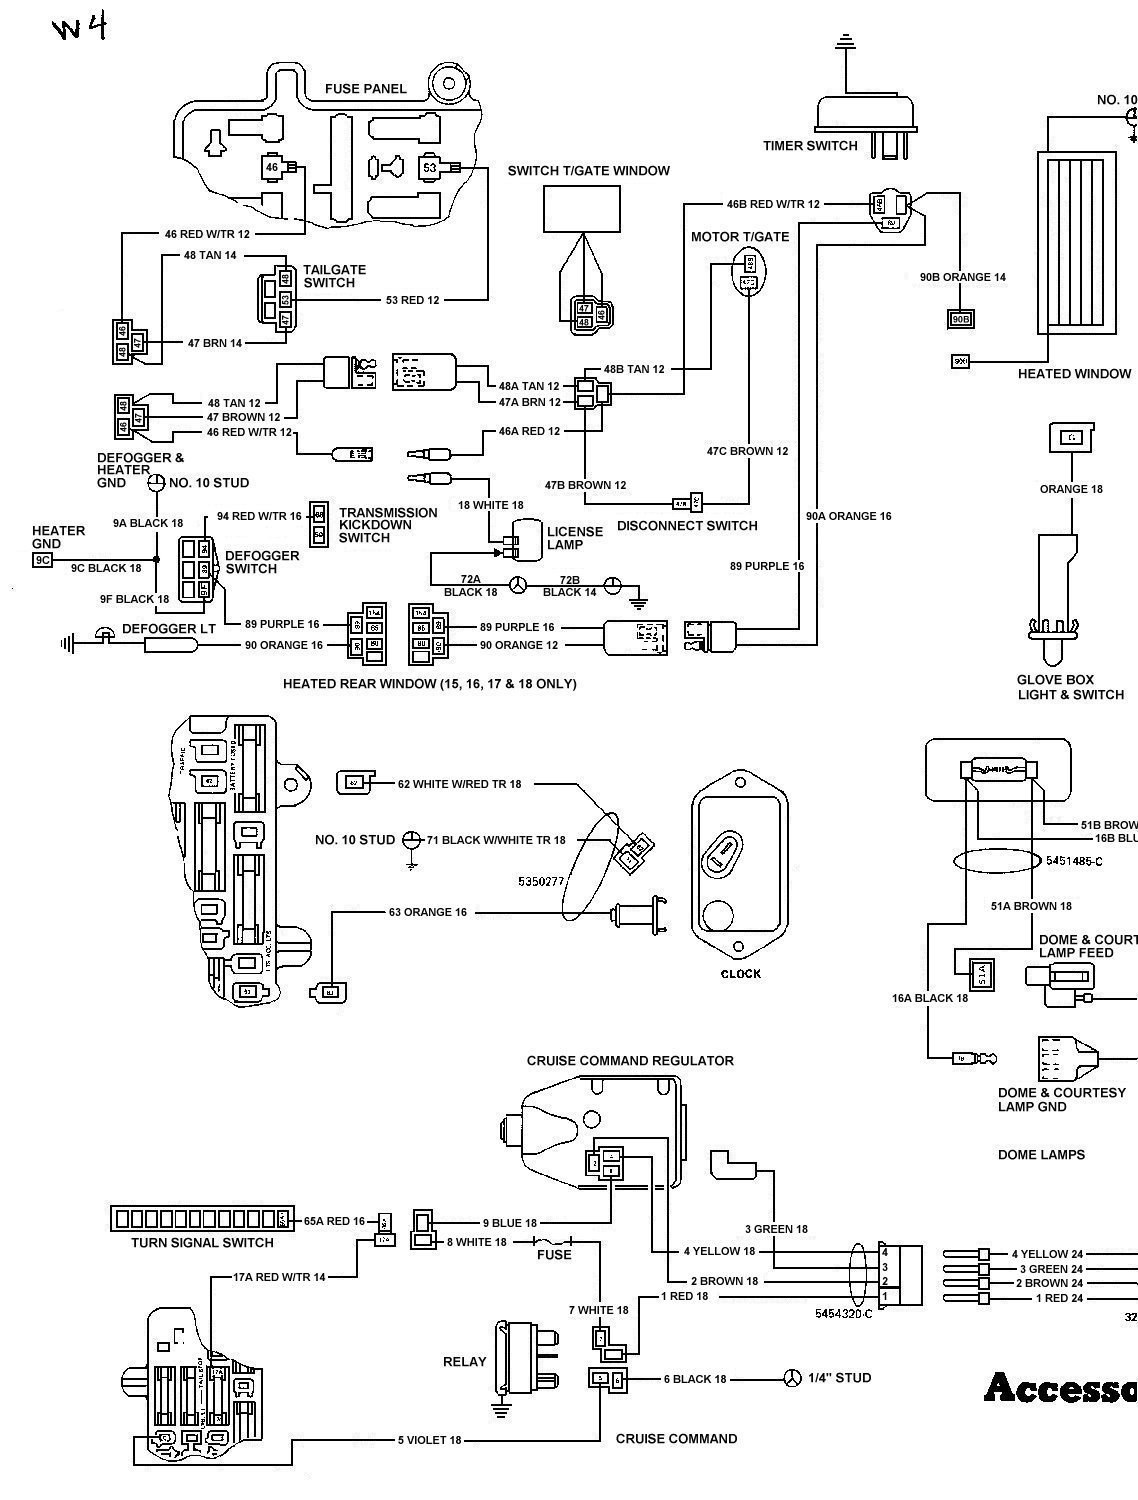 tom oljeep collins fsj wiring page rh oljeep com M38 Jeep Wiring Diagram 1980 Jeep CJ7 Wiring-Diagram